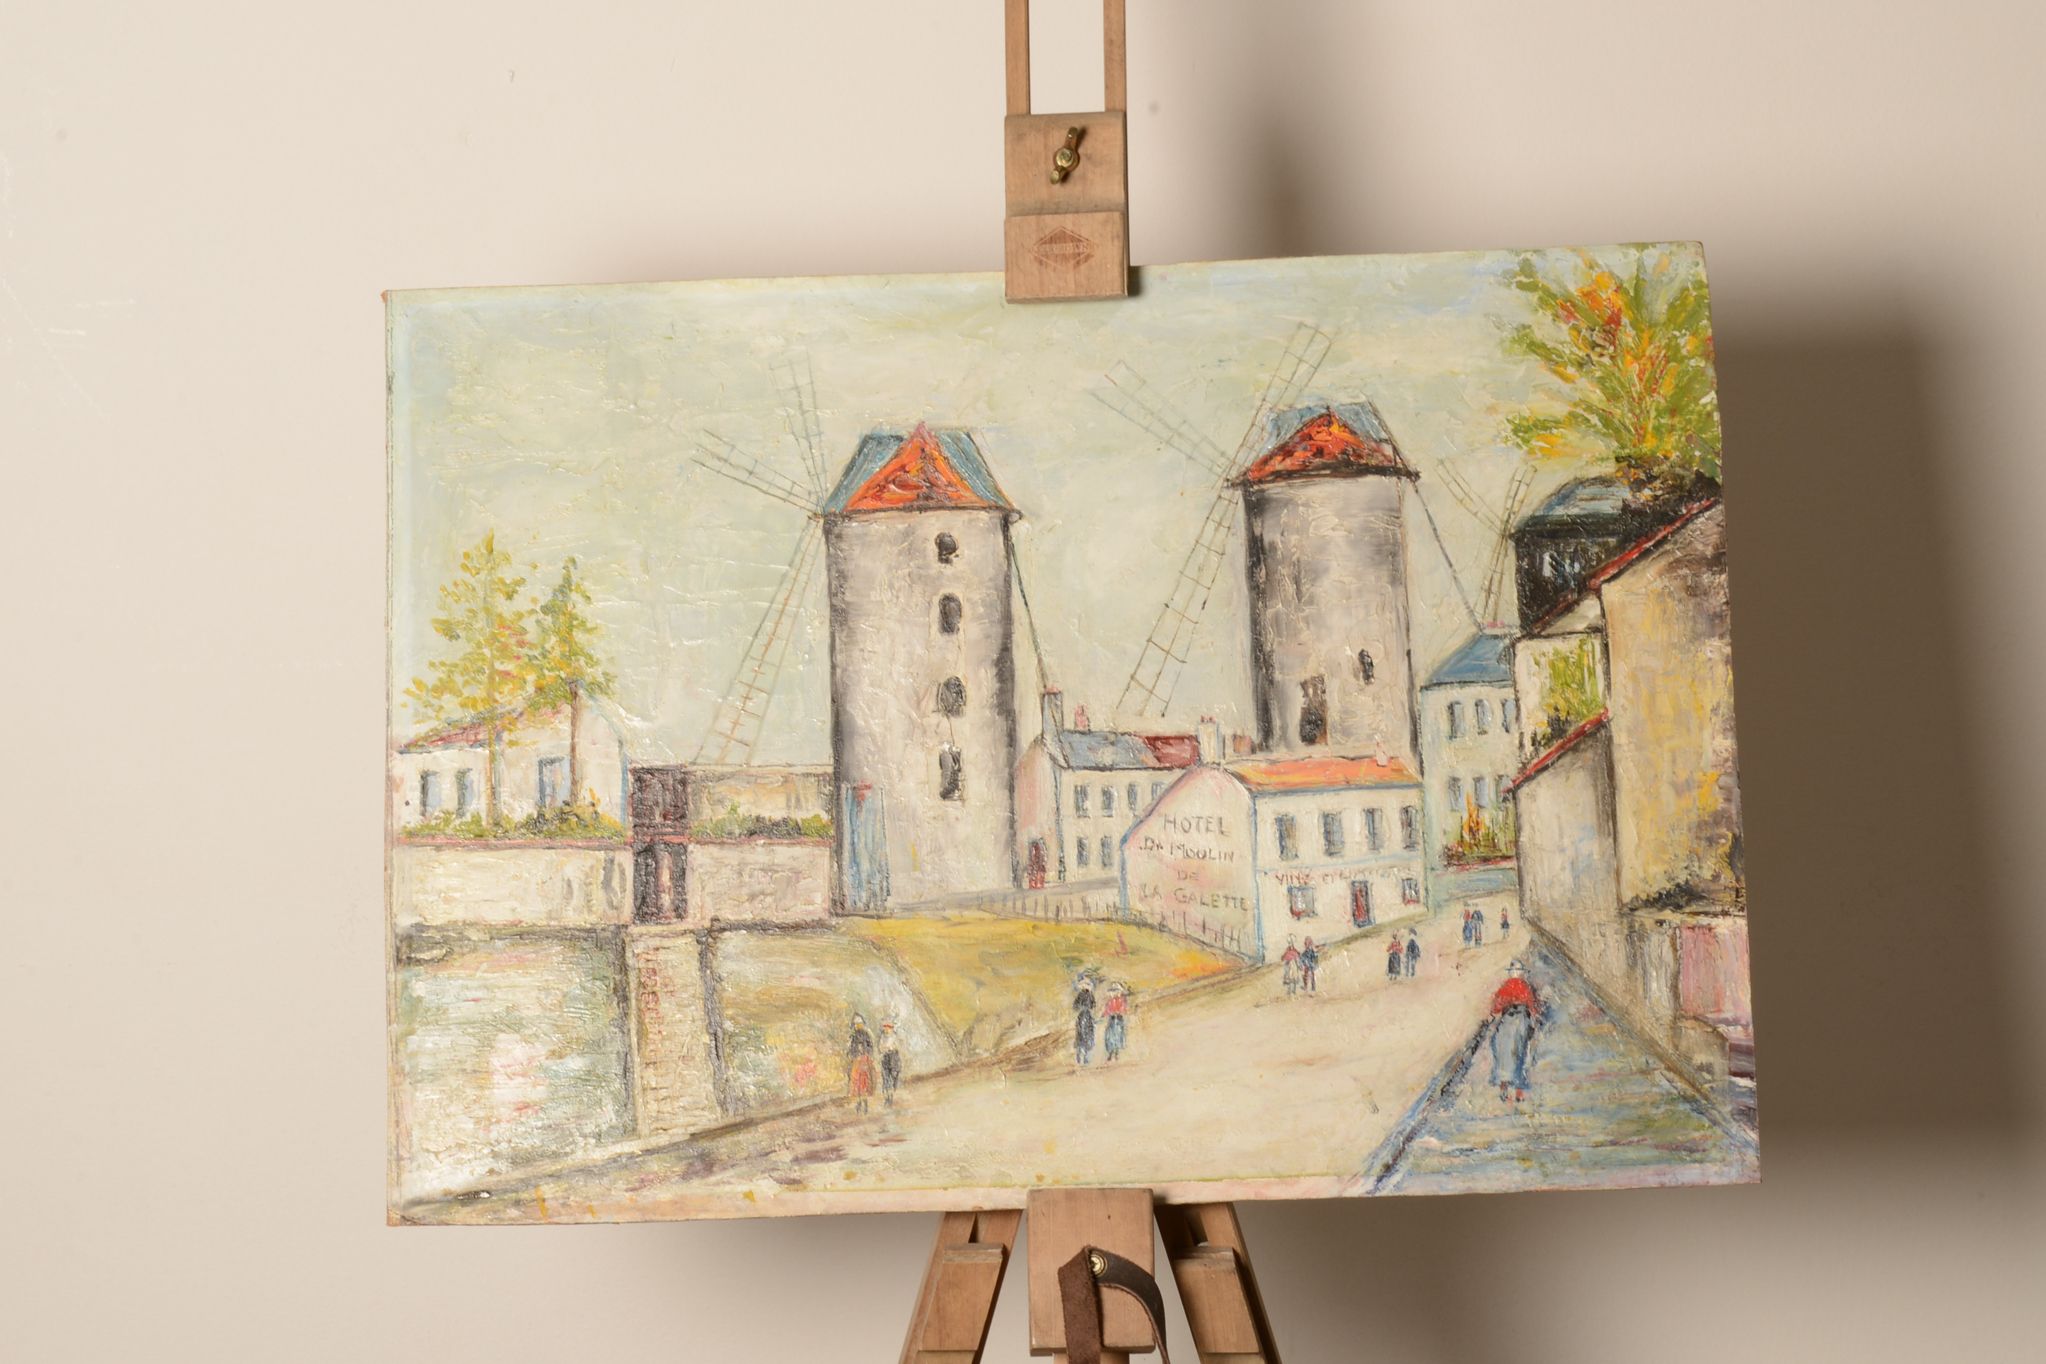 Lot 23 - Oil on board. French scene. Unsigned.